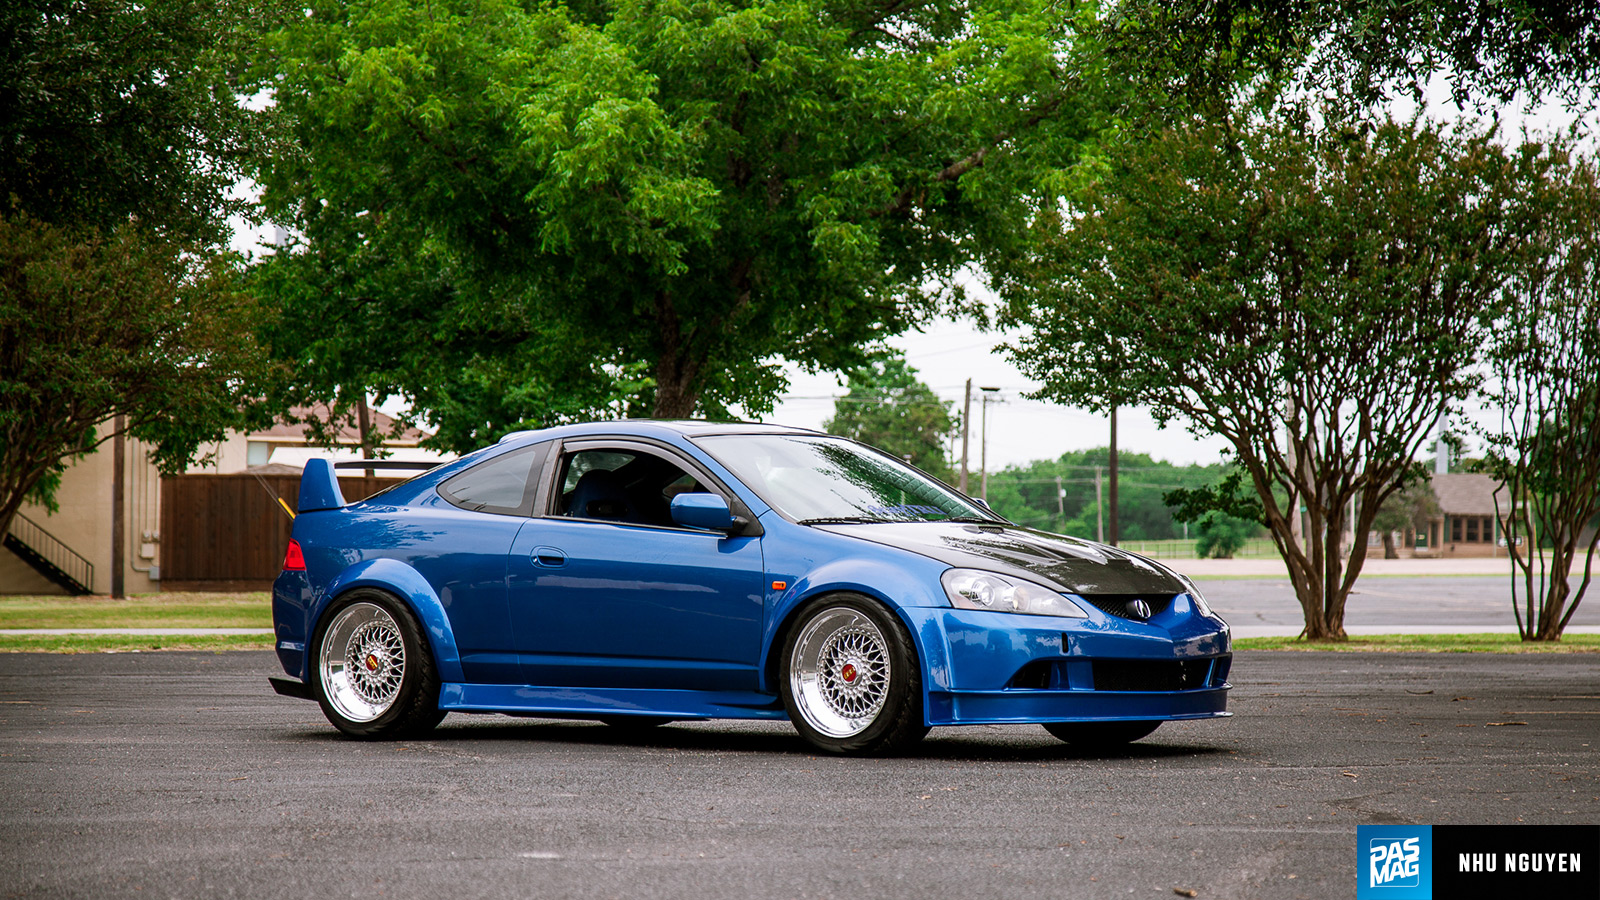 14 Luis Torres 2003 Acura RSX Type S PASMAG TBGLIVE